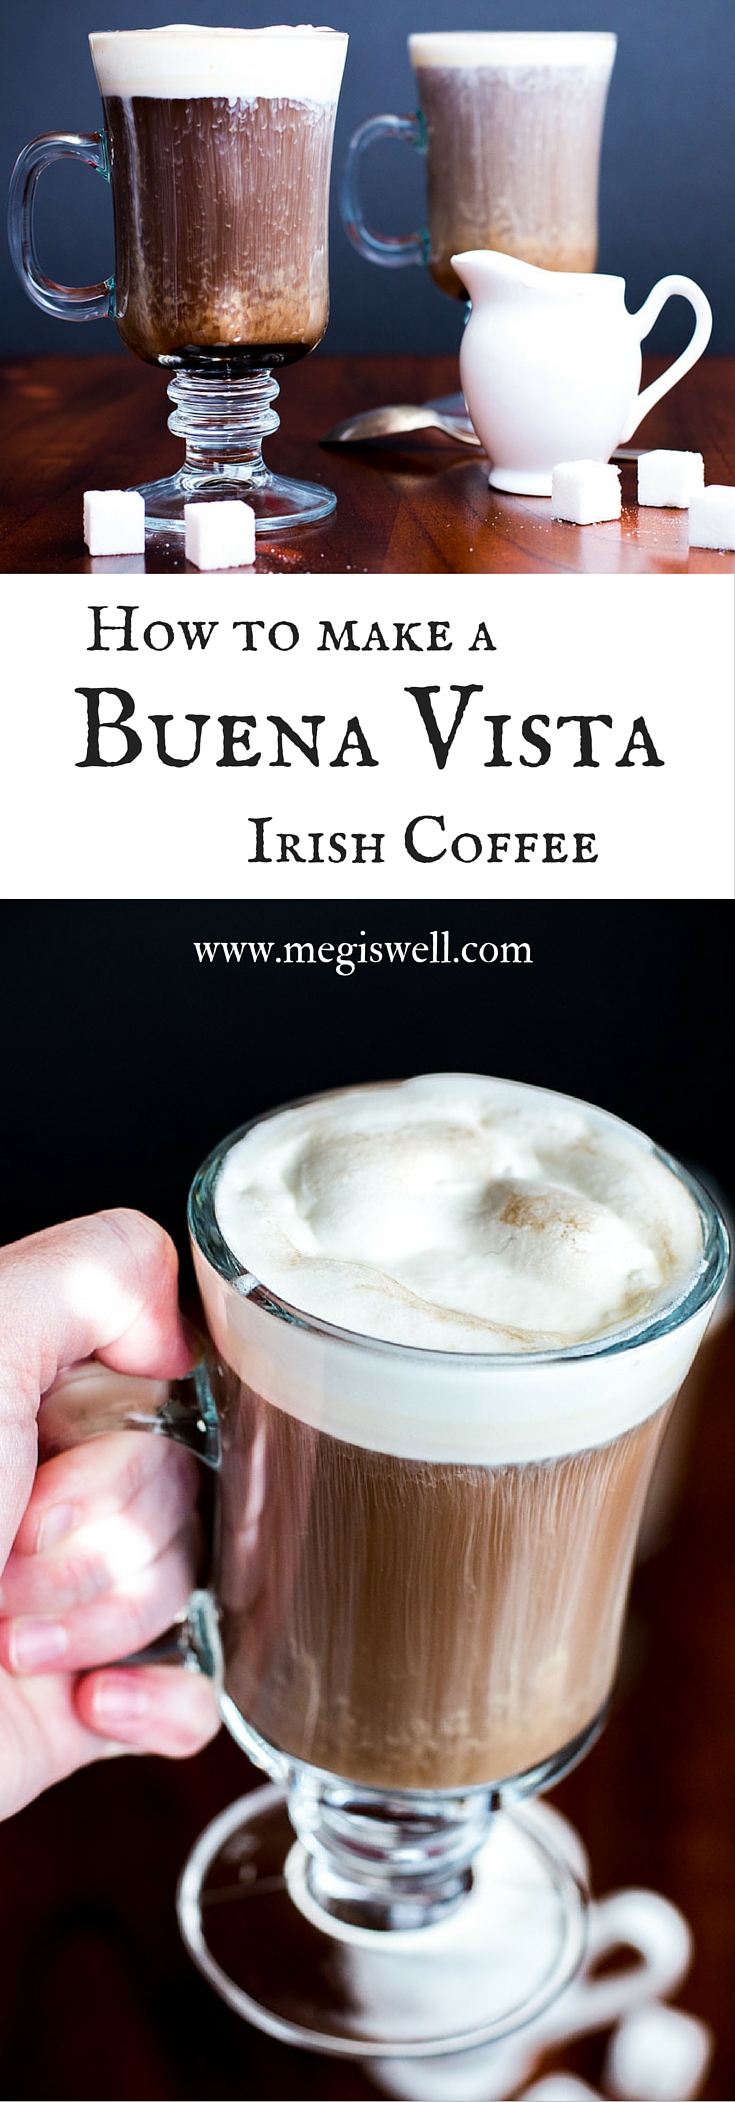 Make the famous Buena Vista Irish Coffees from the comfort of your own home!